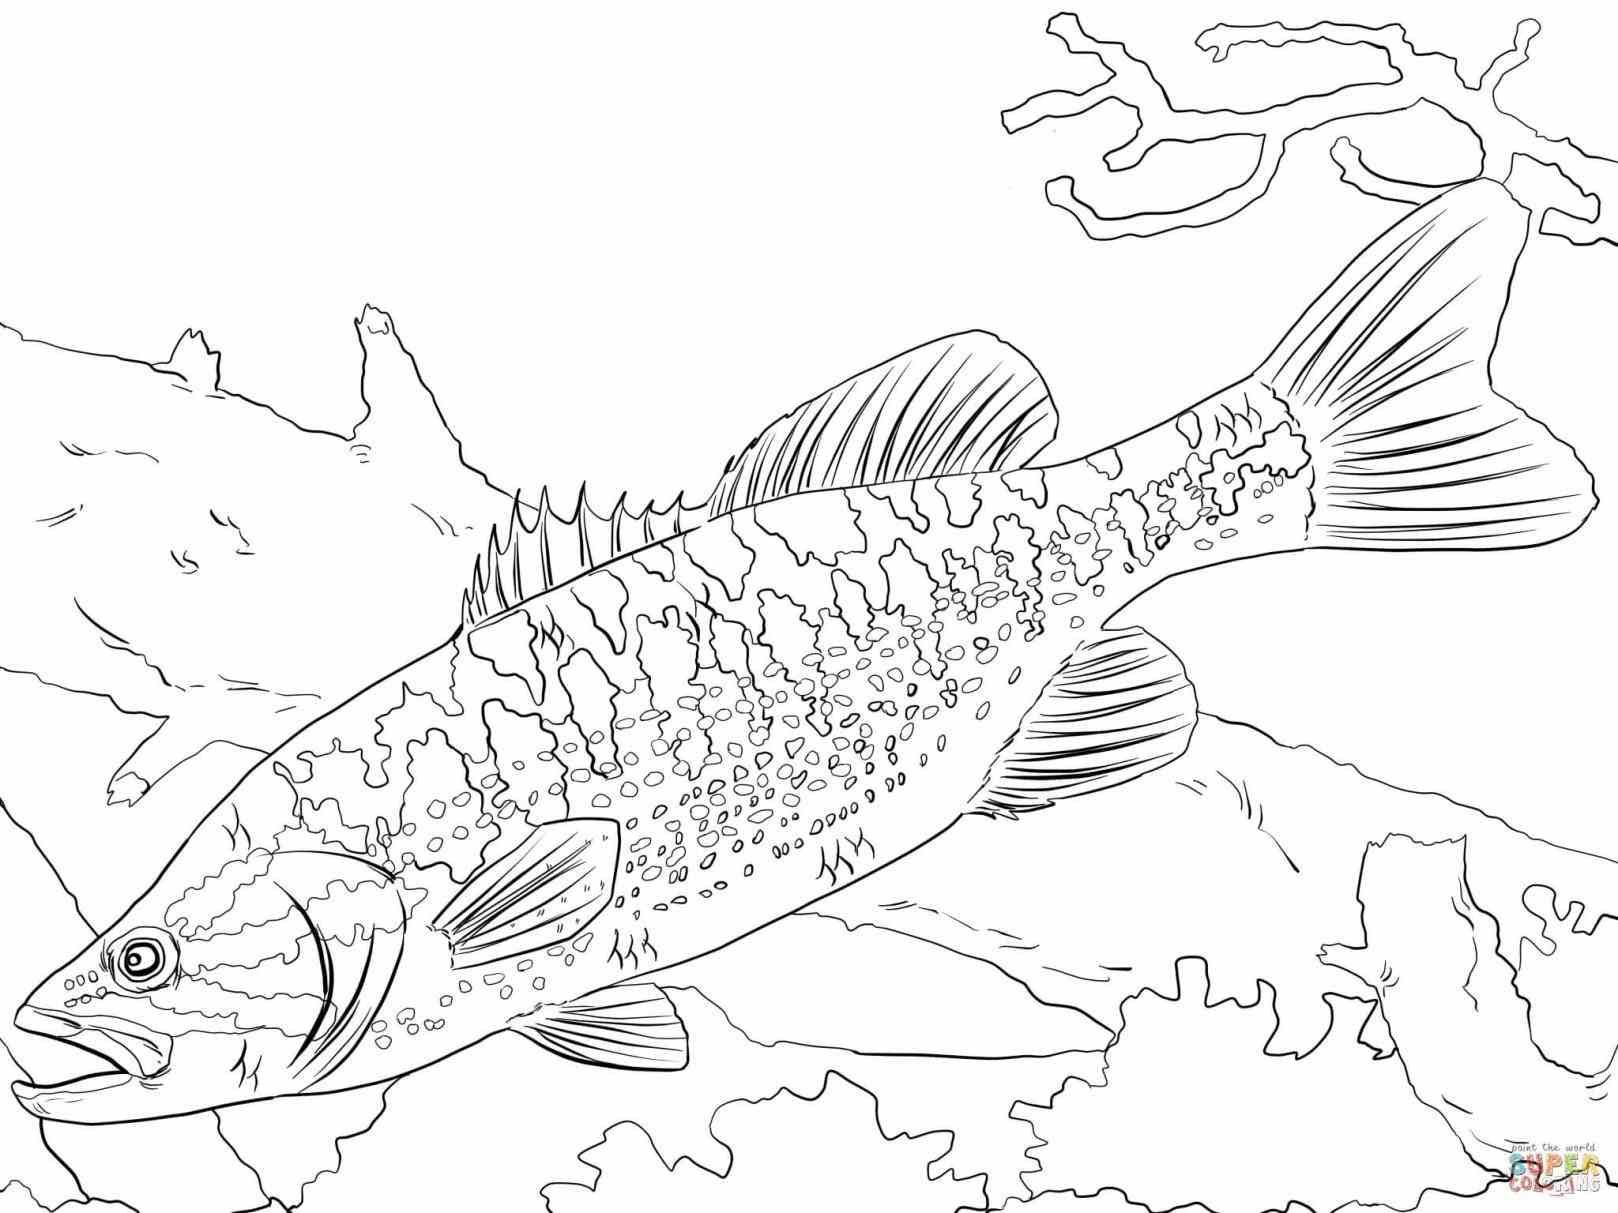 Pin By Jill Gunnstaks Bourne On Drawing Your Ideas Fish Coloring Page Shark Coloring Pages Easy Coloring Pages